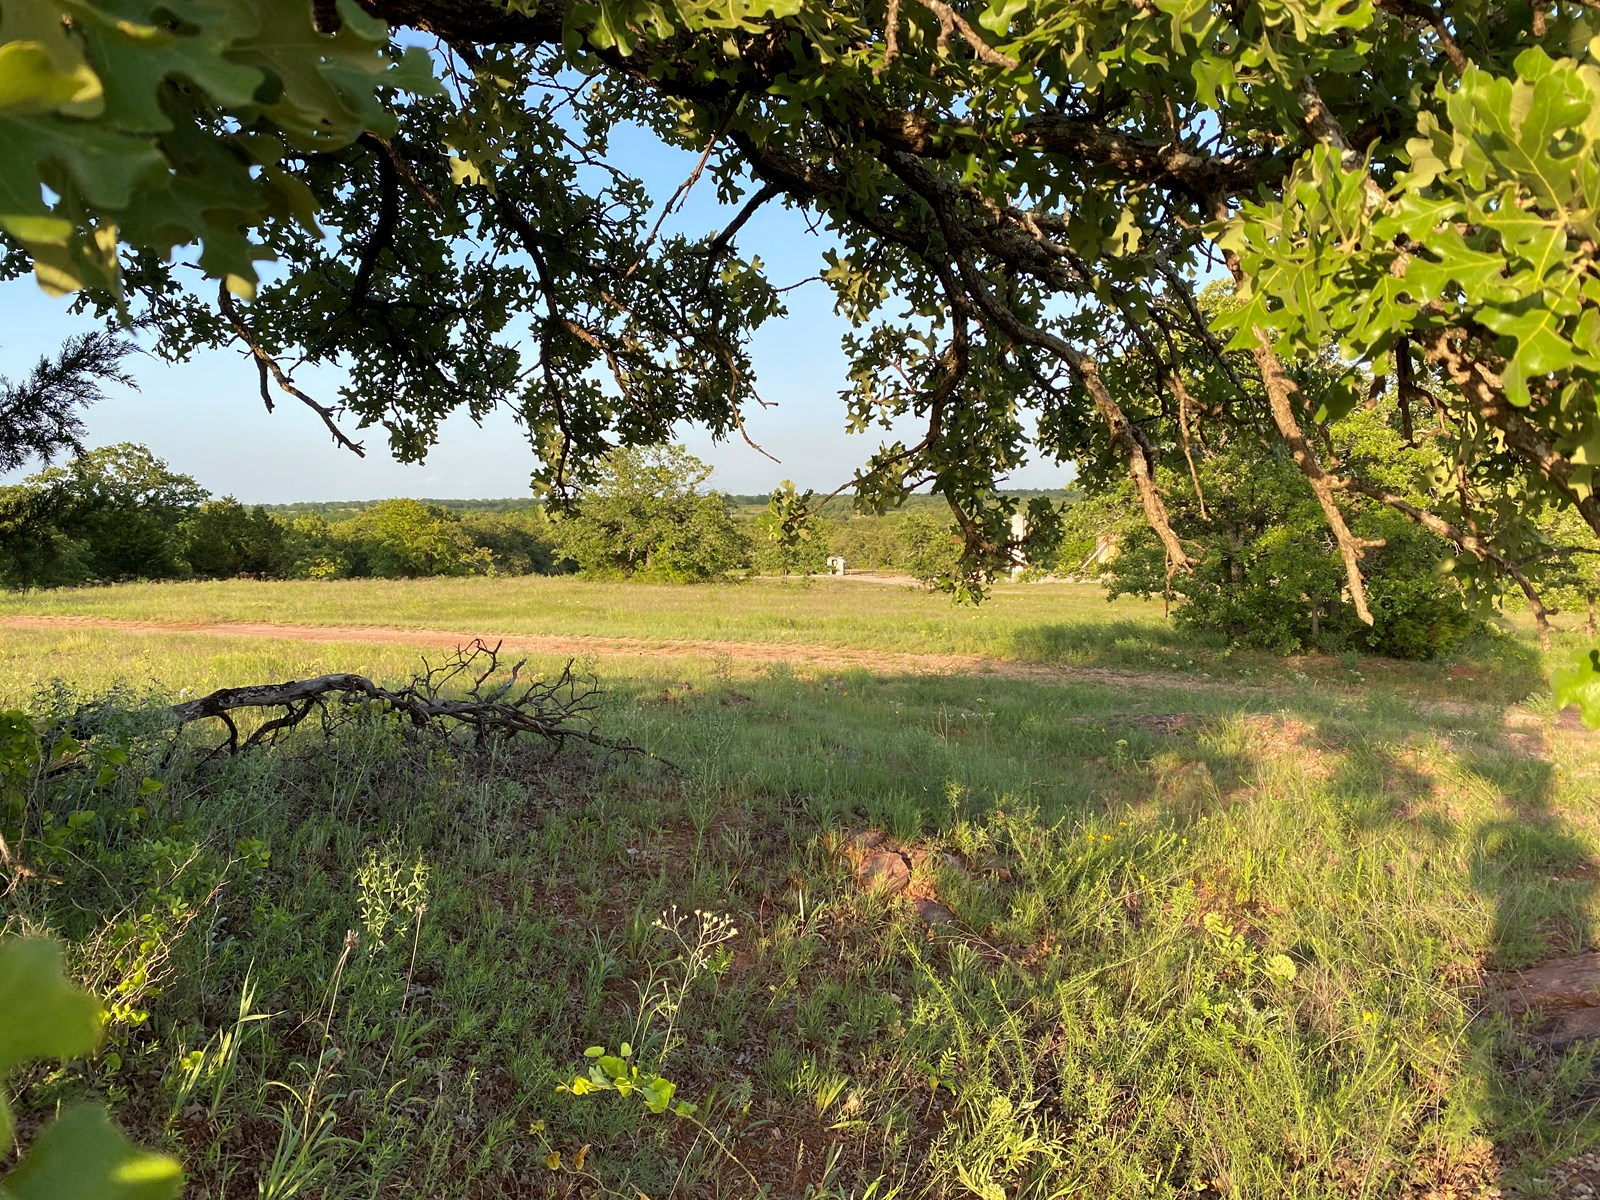 HUNTING LAND FOR SALE IN CARTER COUNTY-RATLIFF CITY, OK